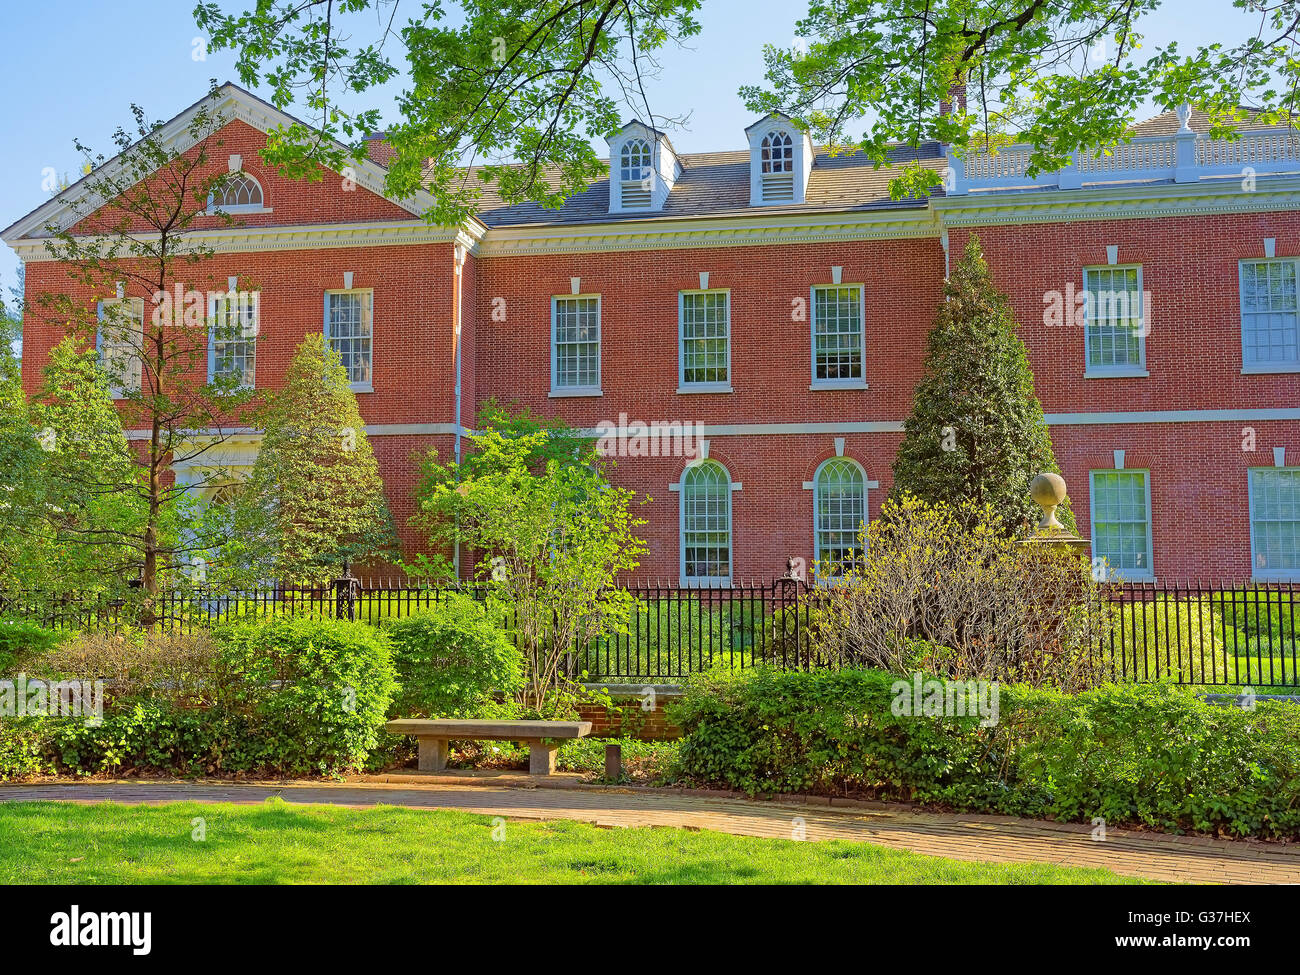 Building of American Philosophical Society in Chestnut Street in the Old City of Philadelphia, Pennsylvania, USA. - Stock Image